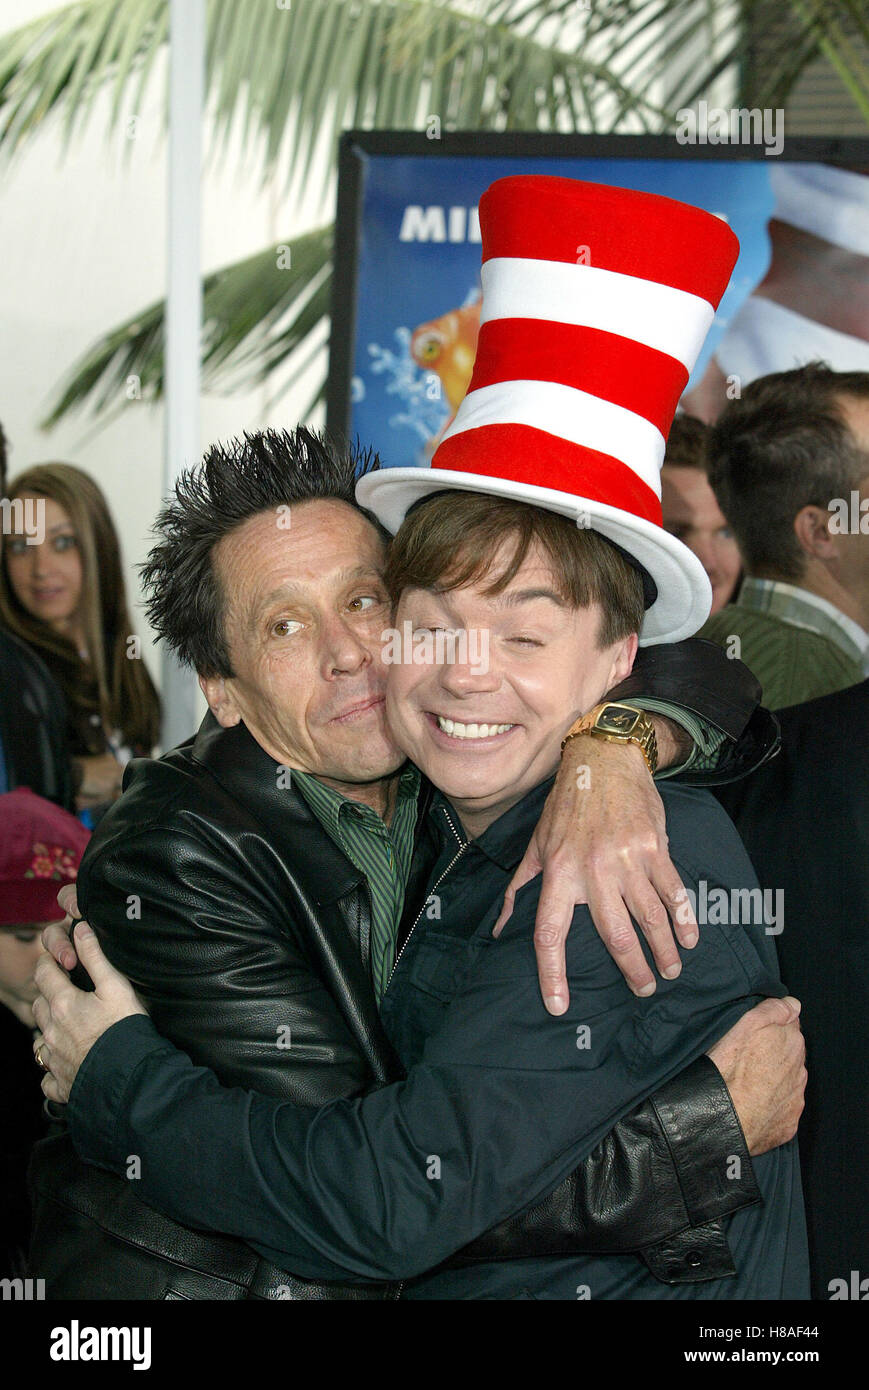 e7b9f747 BRIAN GRAZER & MIKE MYERS DR. SEUSS' THE CAT IN THE HAT CITYWALK UNIVERSAL  STUDIOS LA USA 08 November 2003